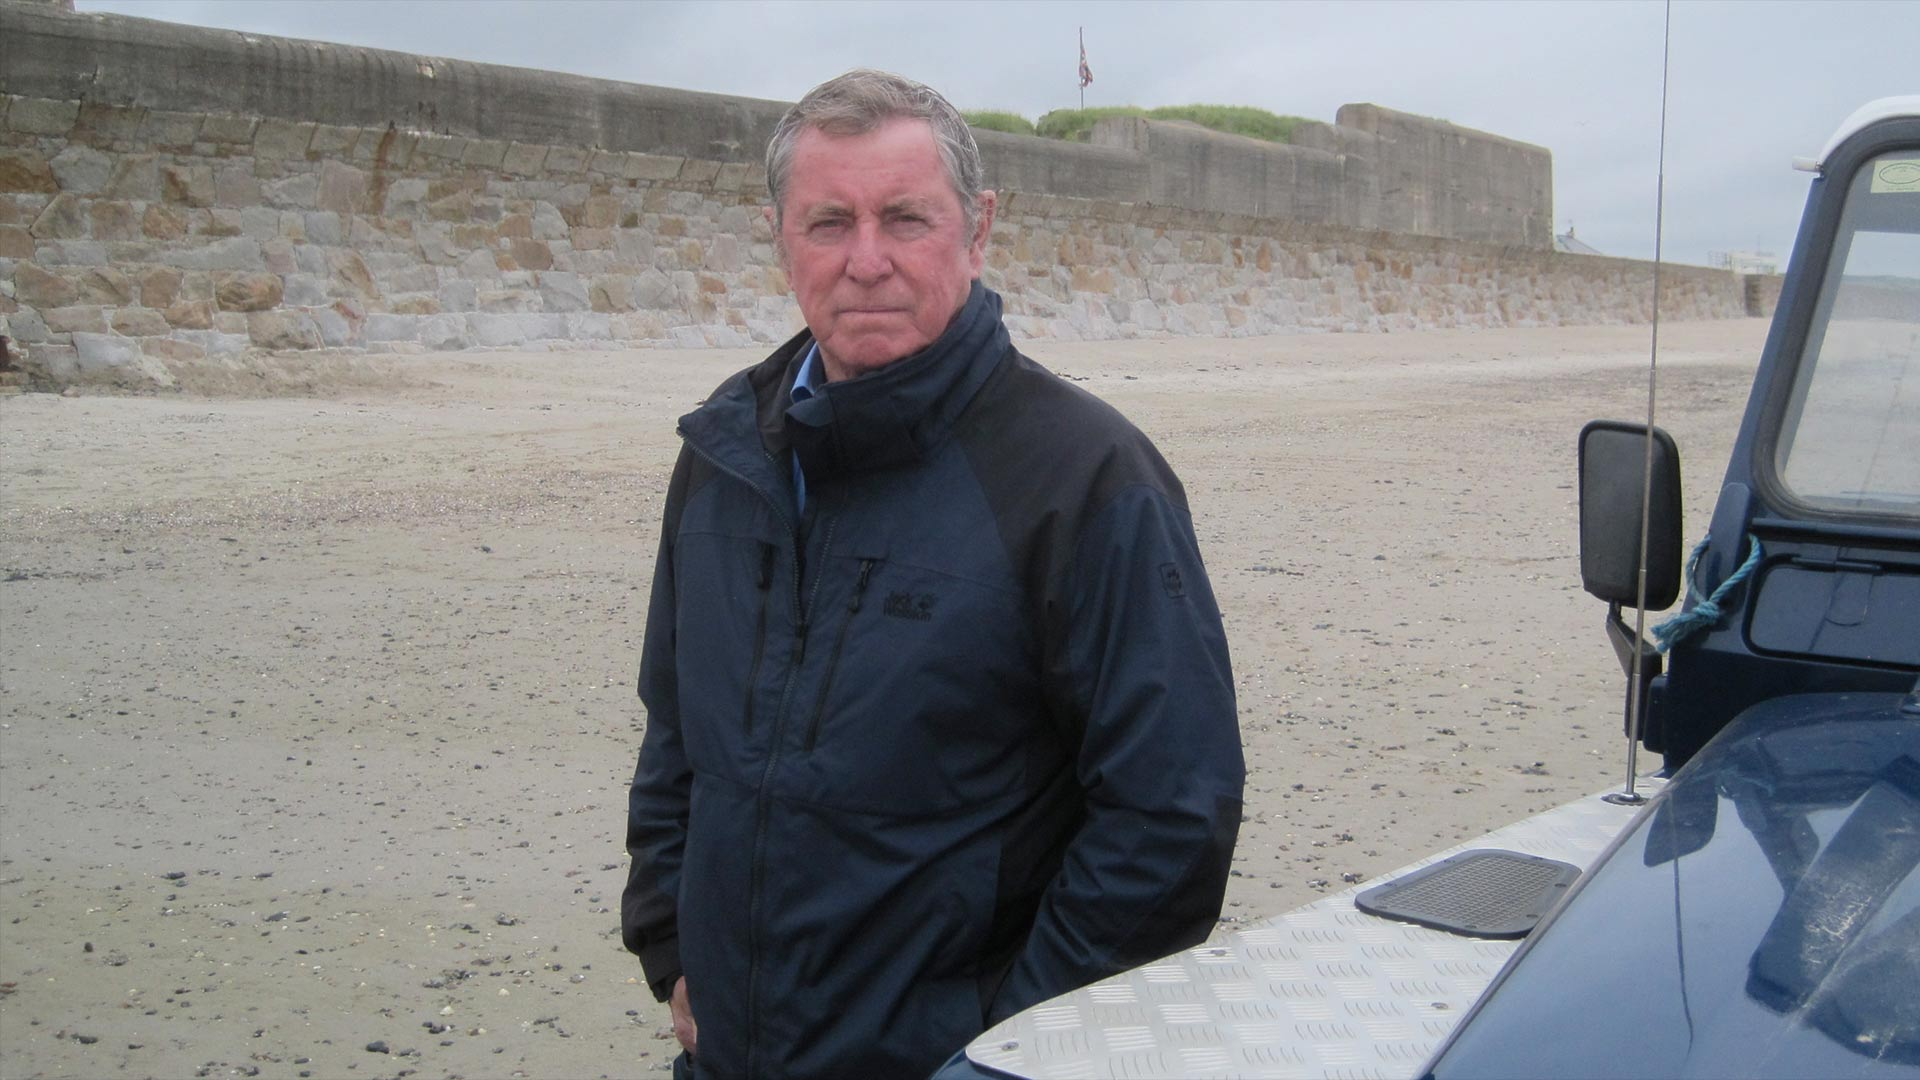 John Nettles standing next to his Land Rover.